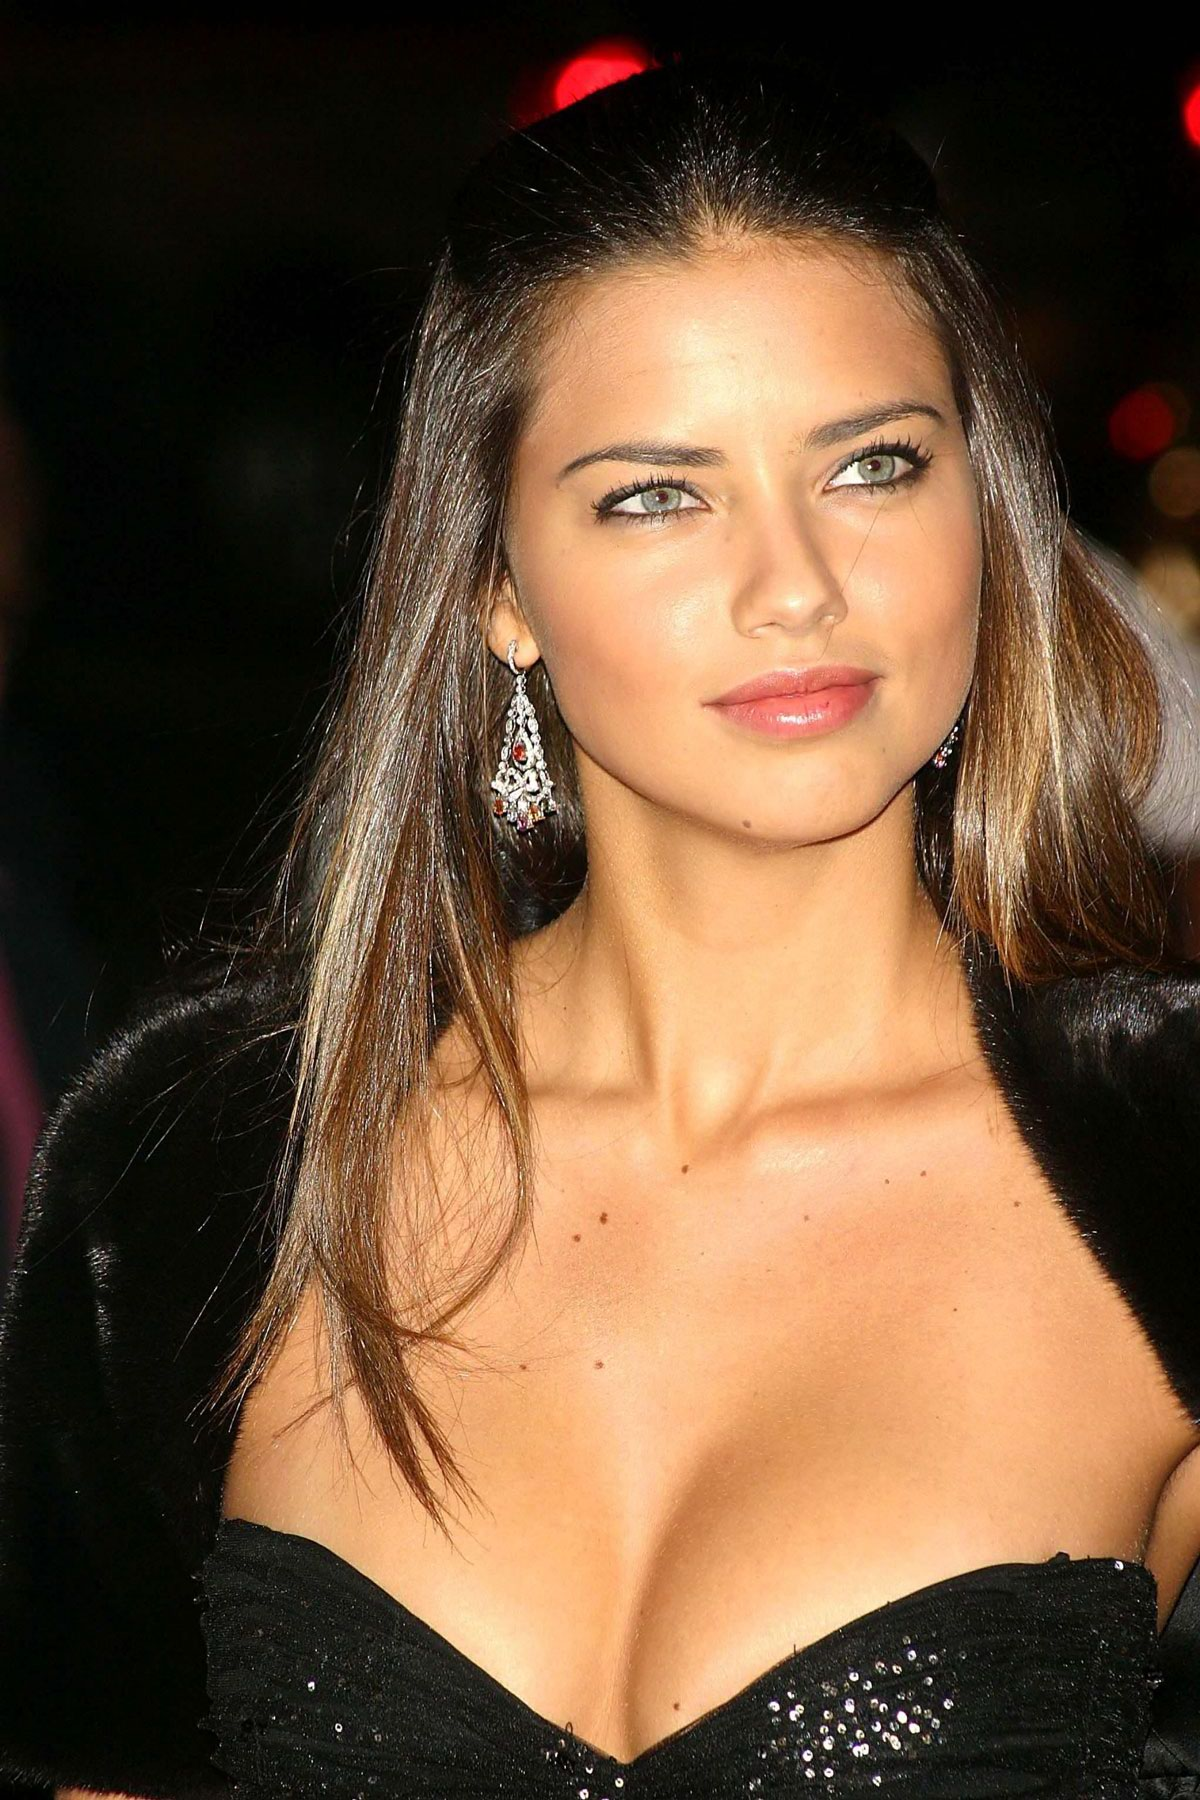 adriana lima photos - photo #9